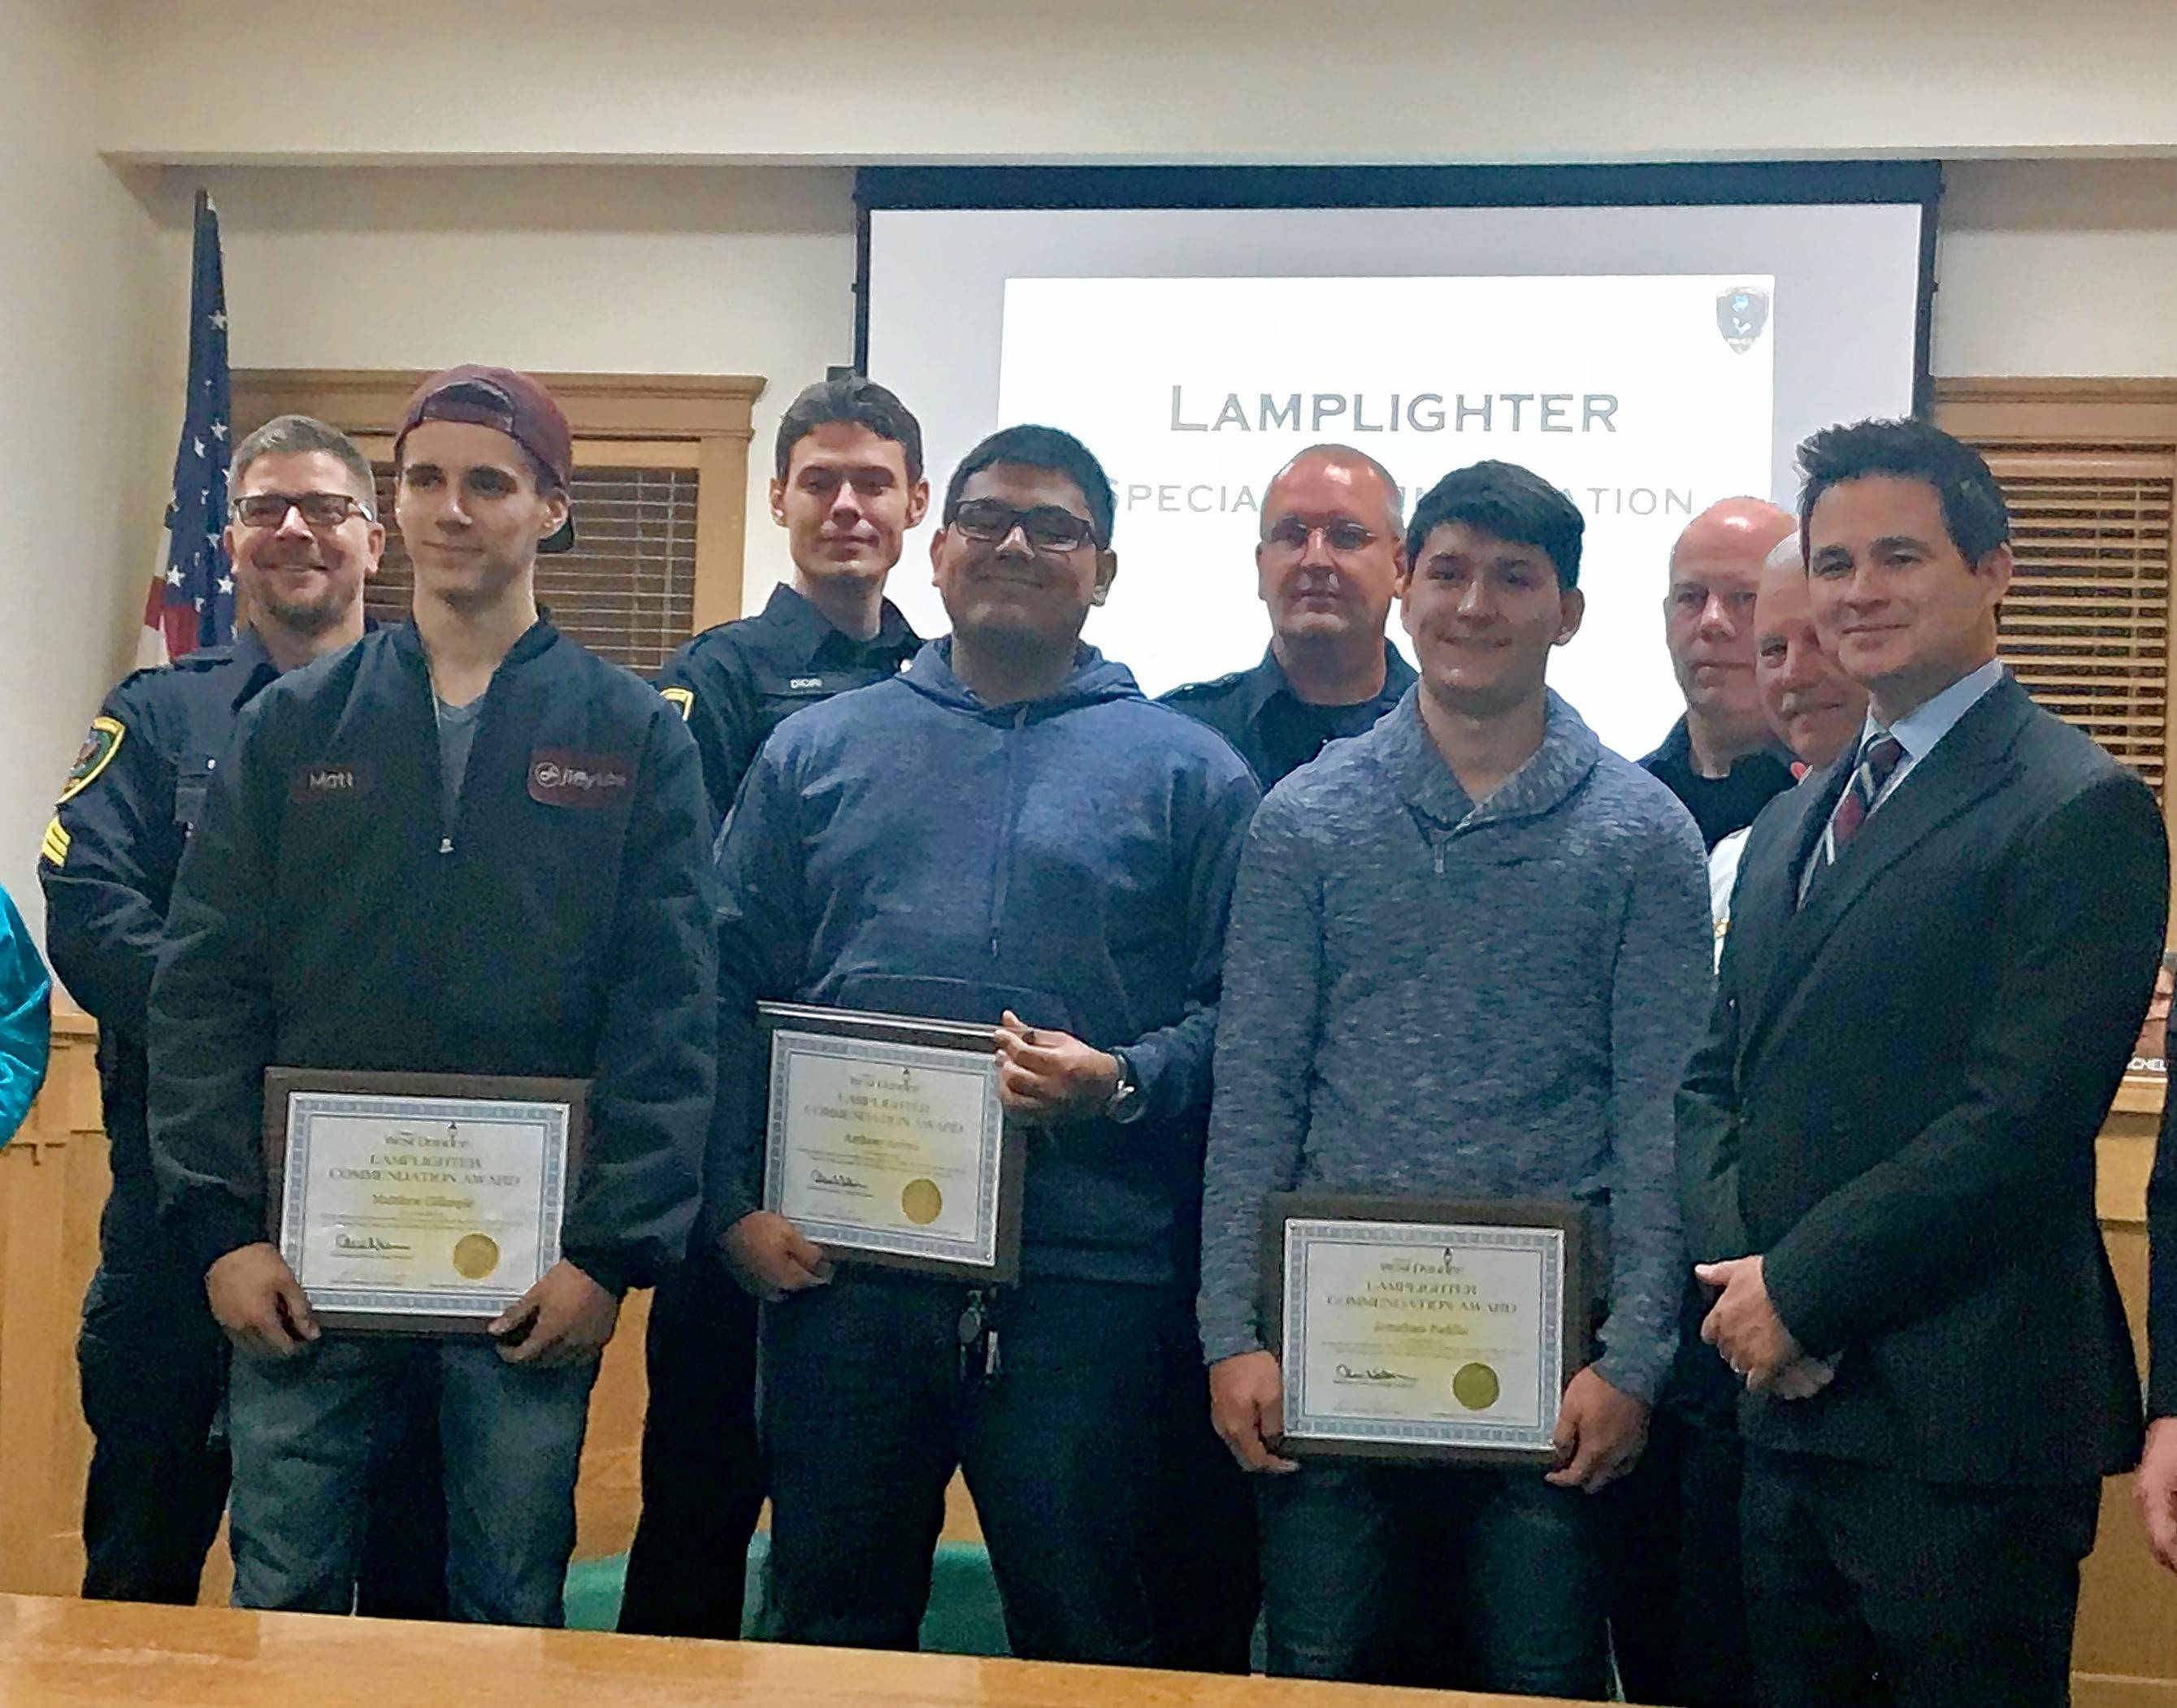 Matthew Gillespie, front left, Anthony Arroyo and Jonathan Padilla were honored by West Dundee officials Monday for saving the life of a 1-year-old who fell out of a moving vehicle.